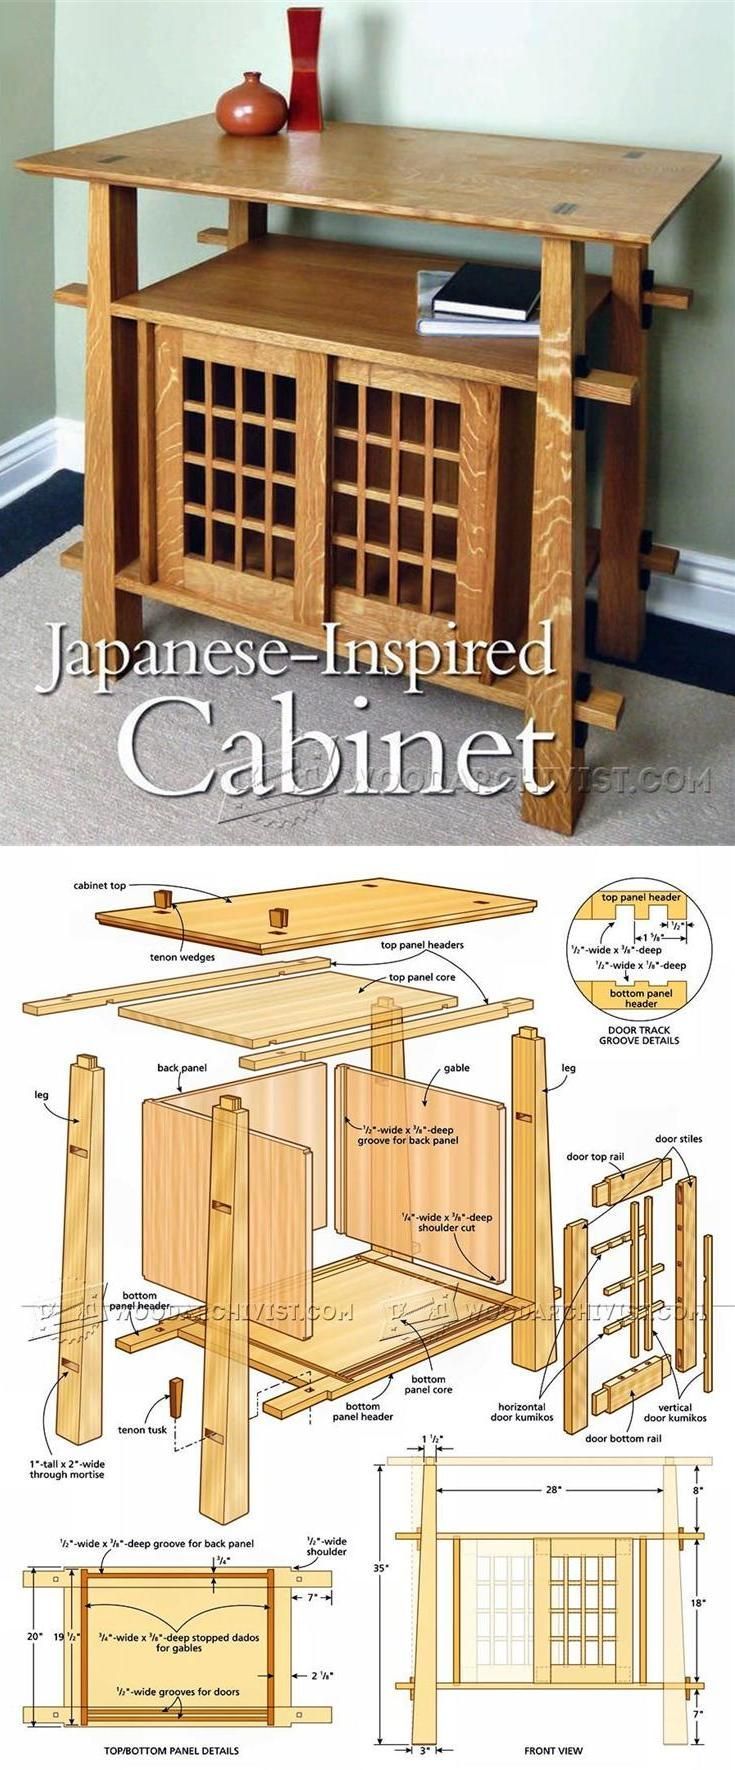 japanese cabinet plans - furniture plans and projects